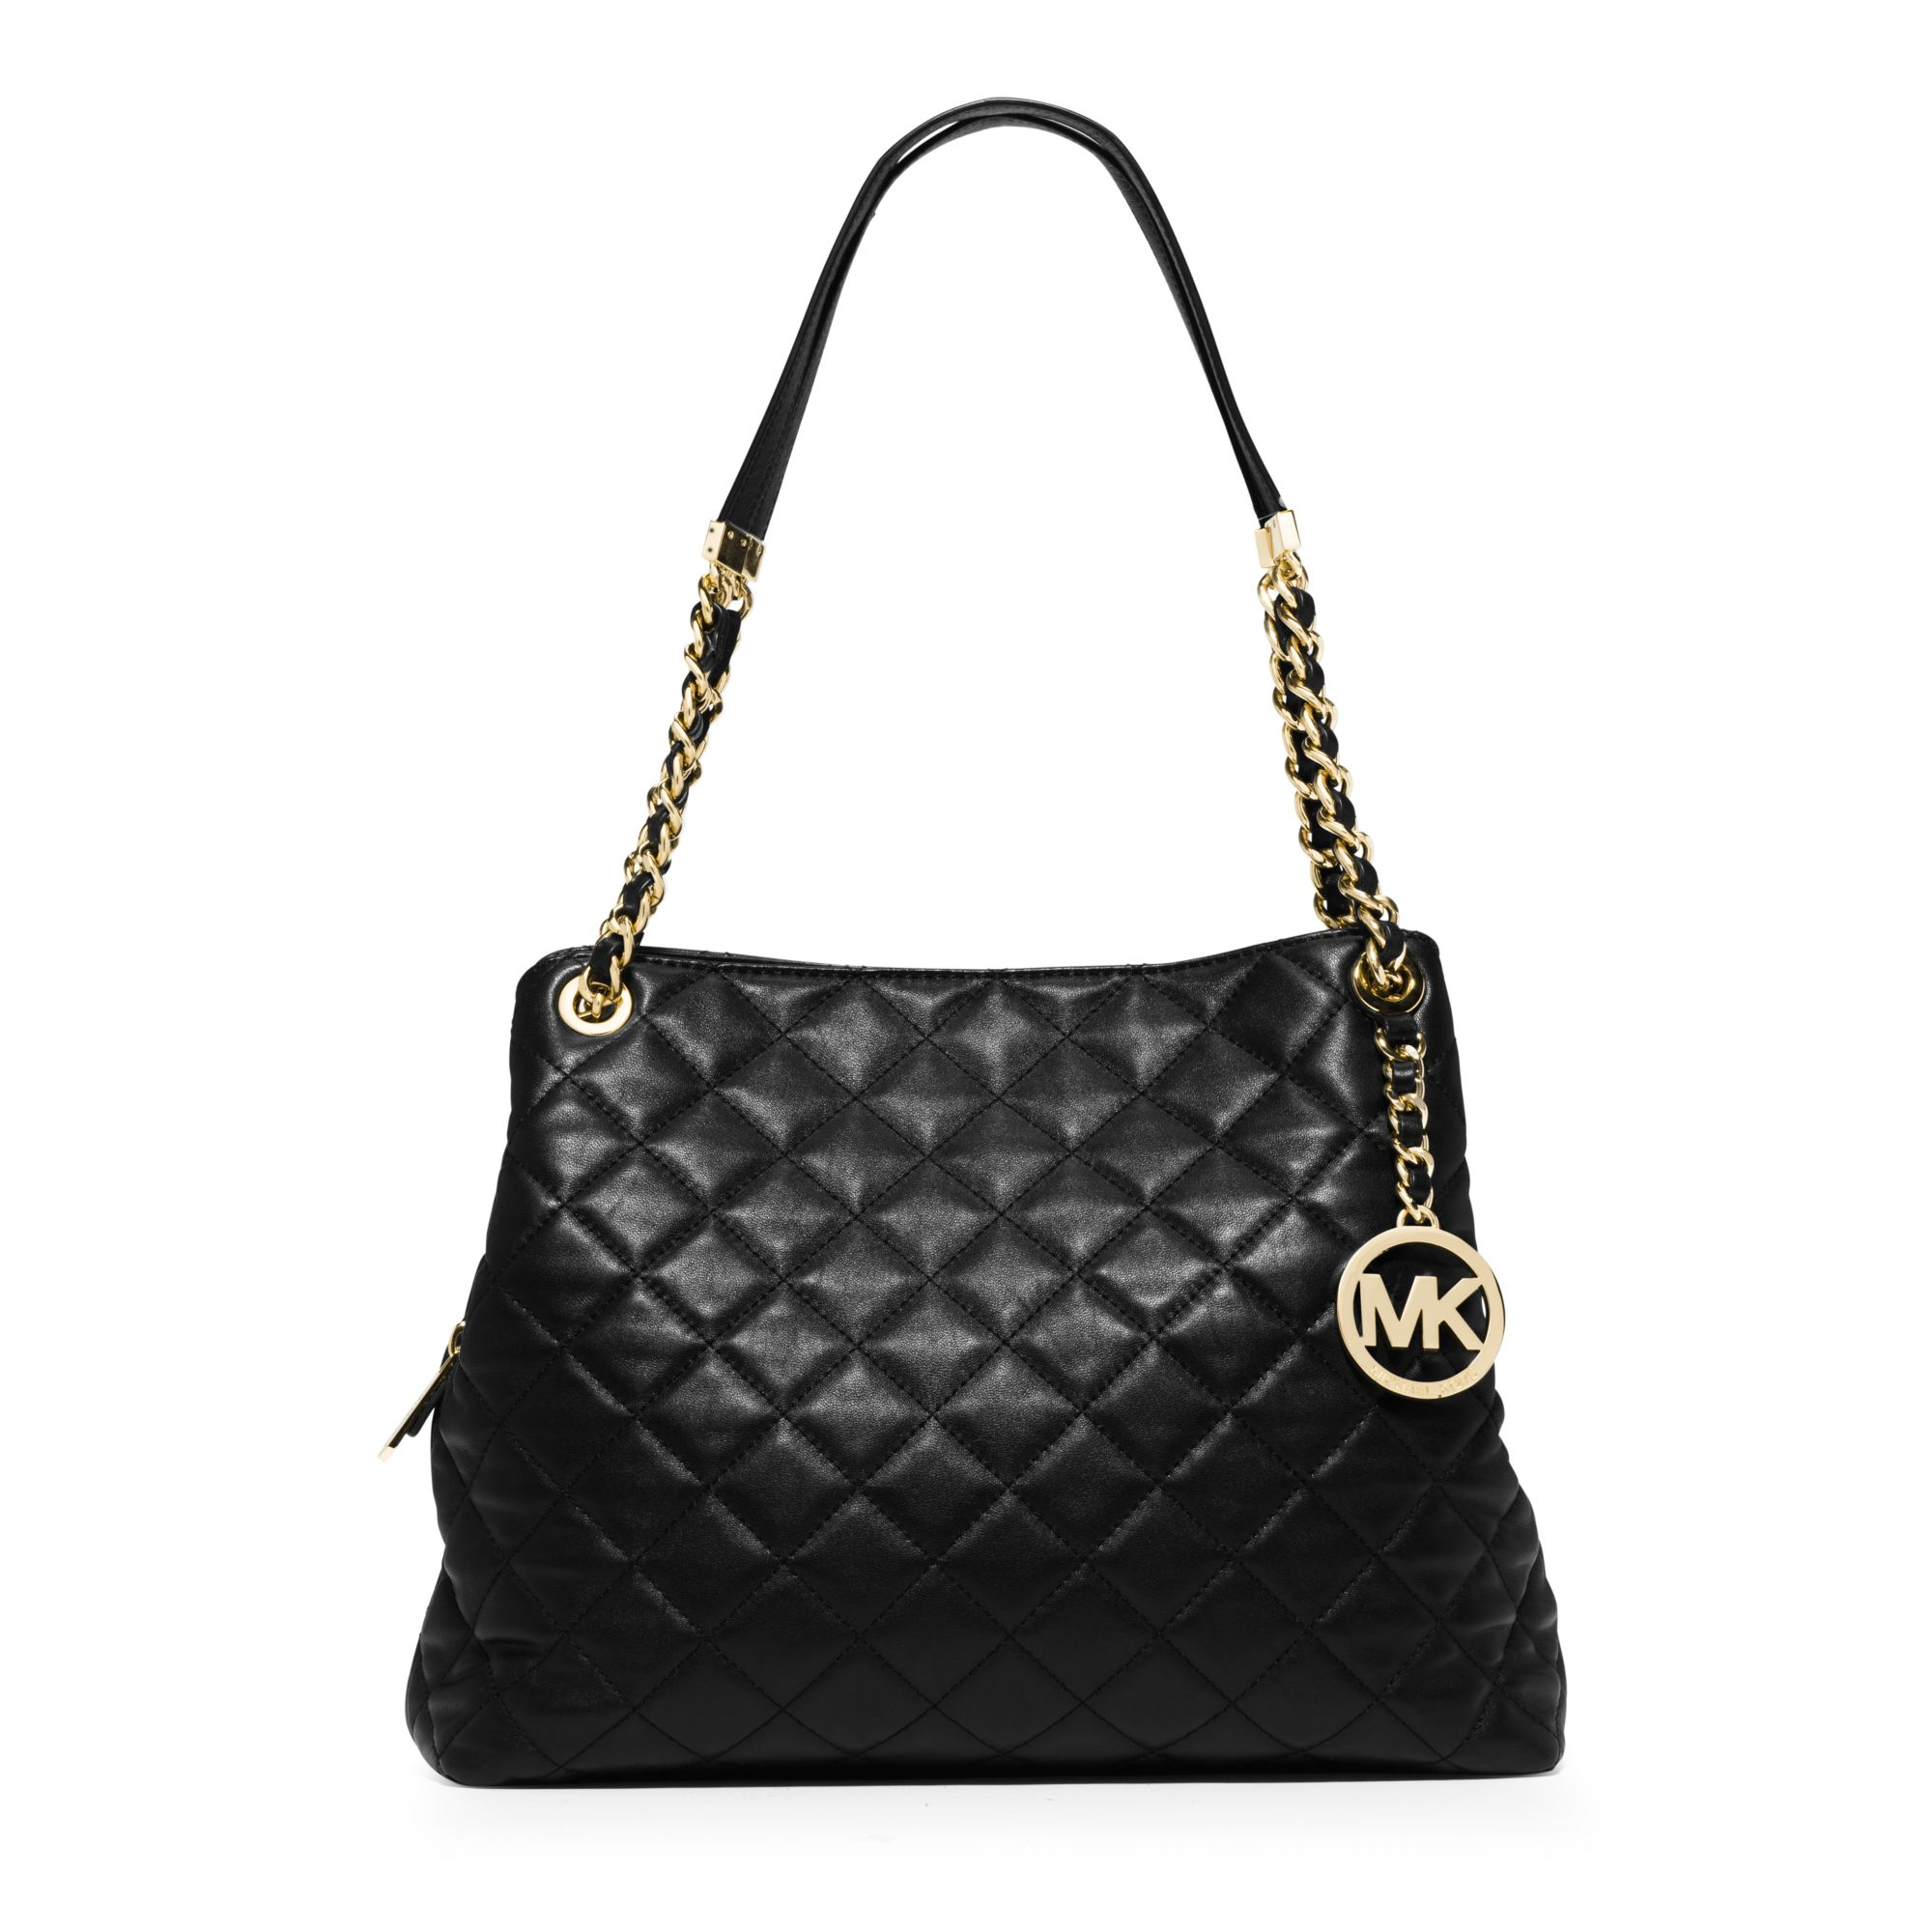 lyst michael kors susannah large quilted leather shoulder bag in black rh lyst com